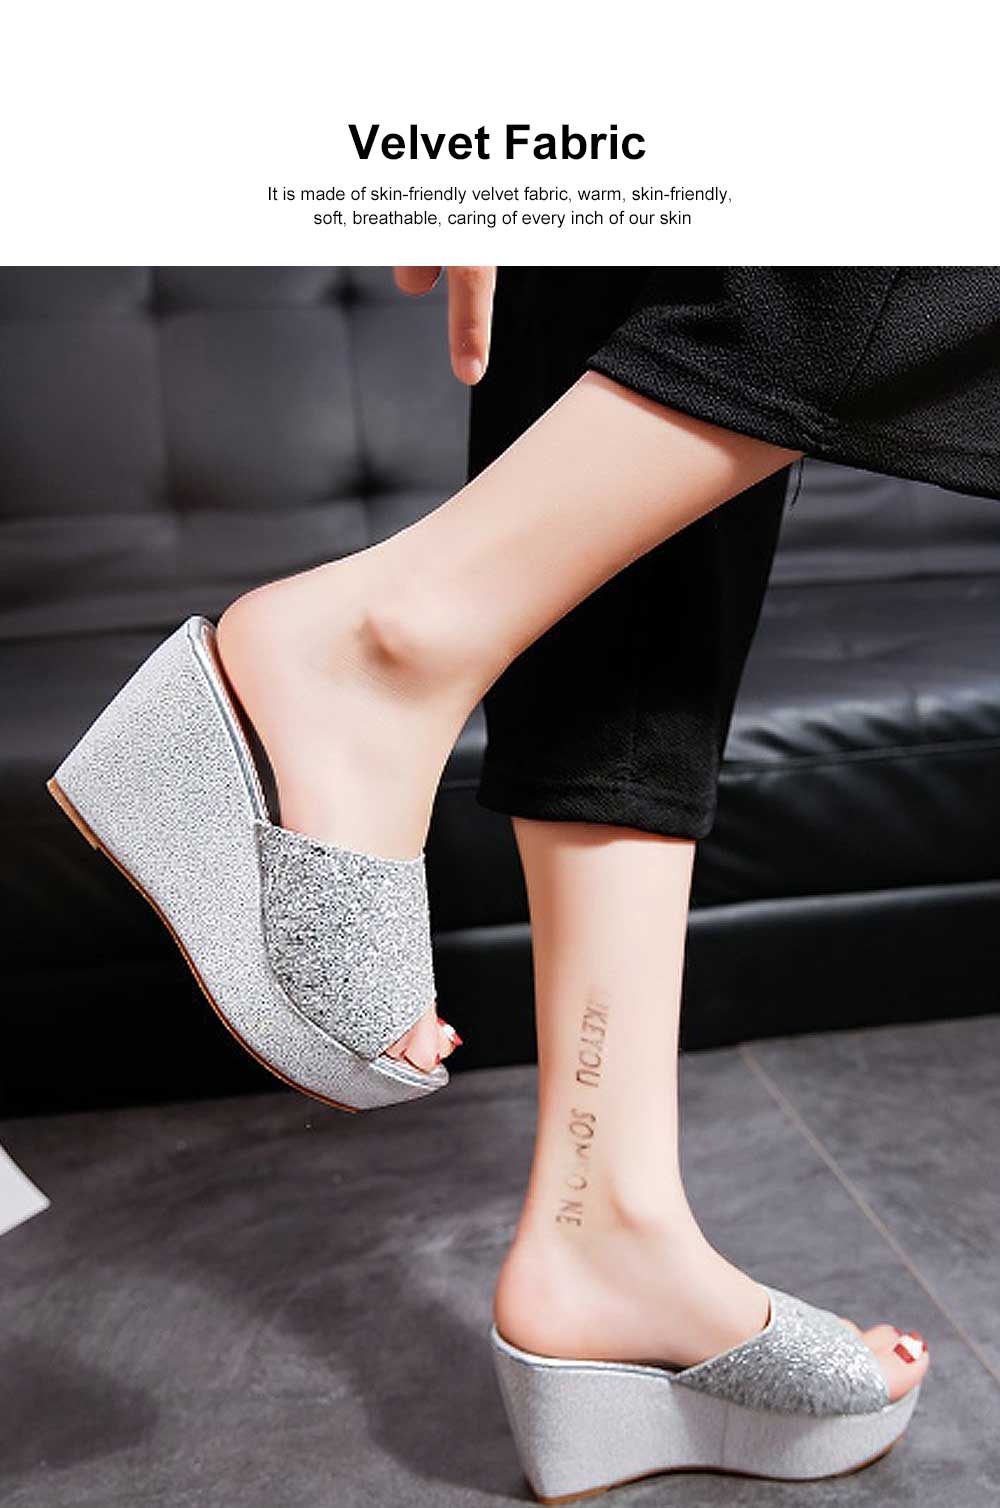 2019 Latest Platform Shoes in Vogue, Fashionable Glittering High Quality Wedge Heel Sandals with Tinsel 1